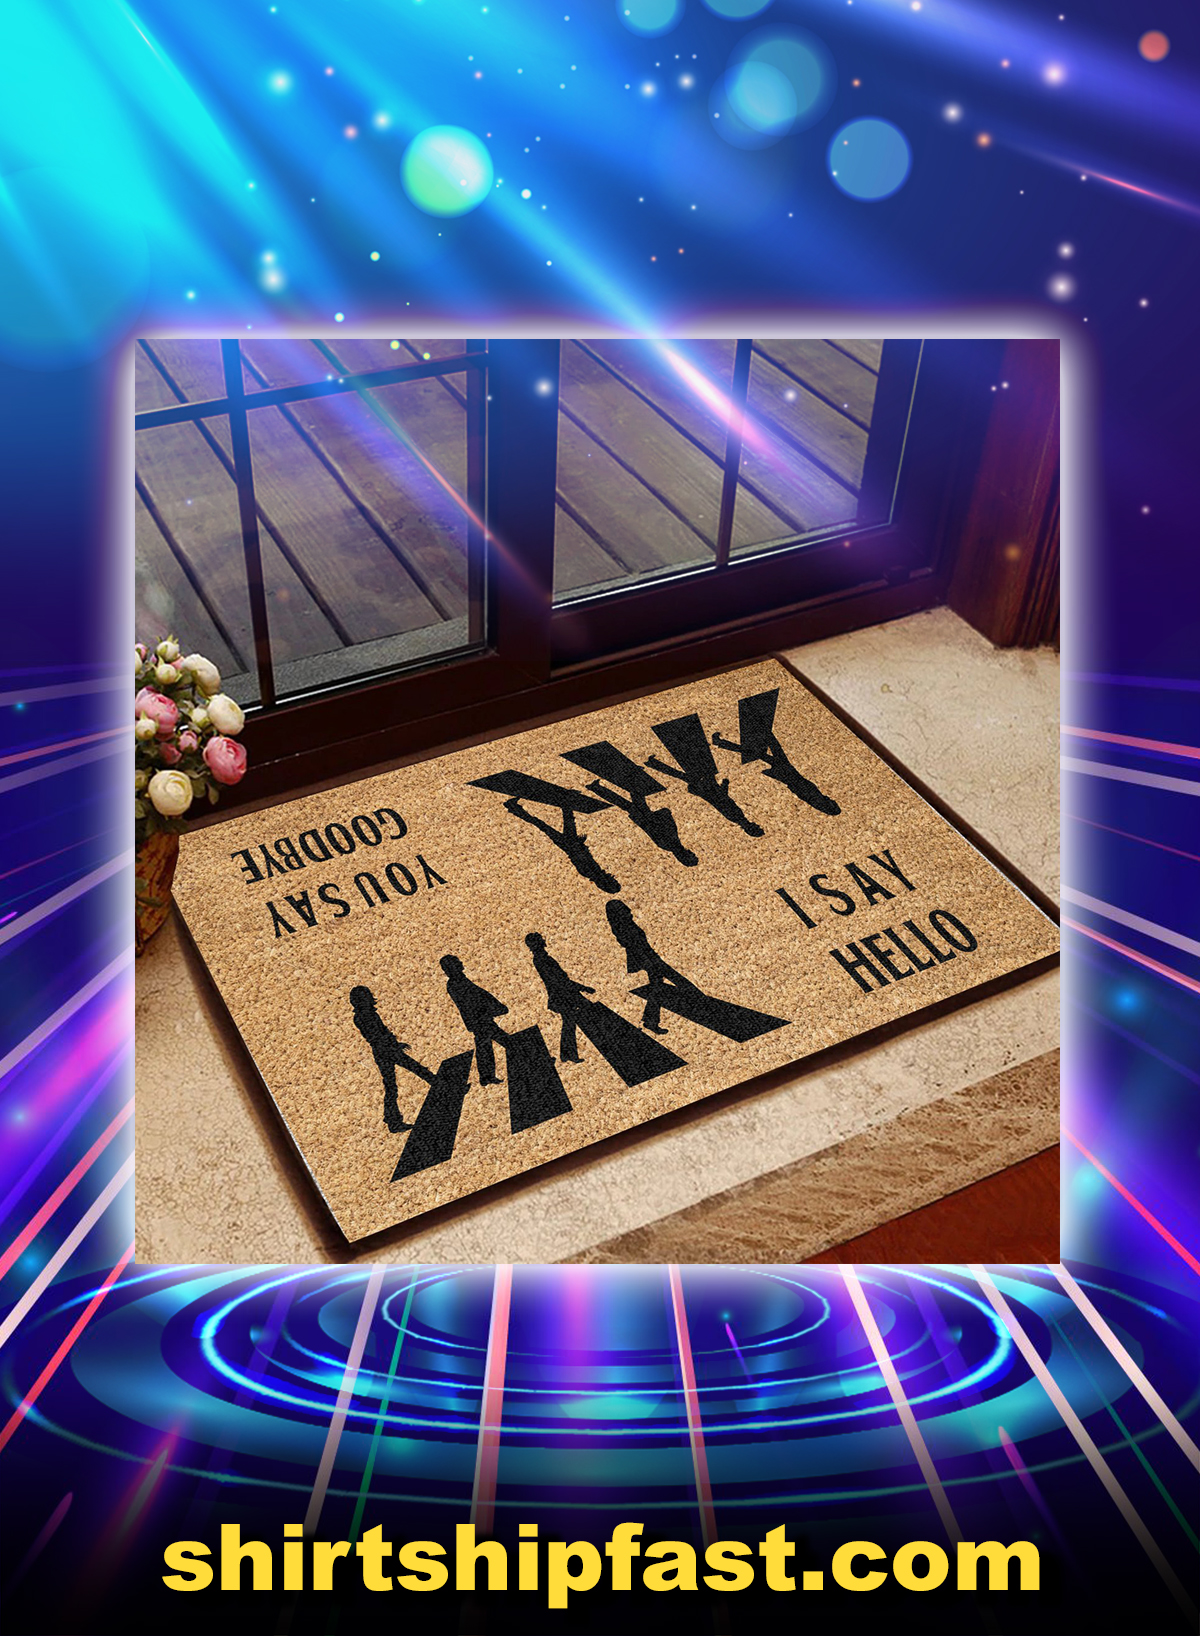 The beatles You say goodbye i say hello doormat - Picture 1